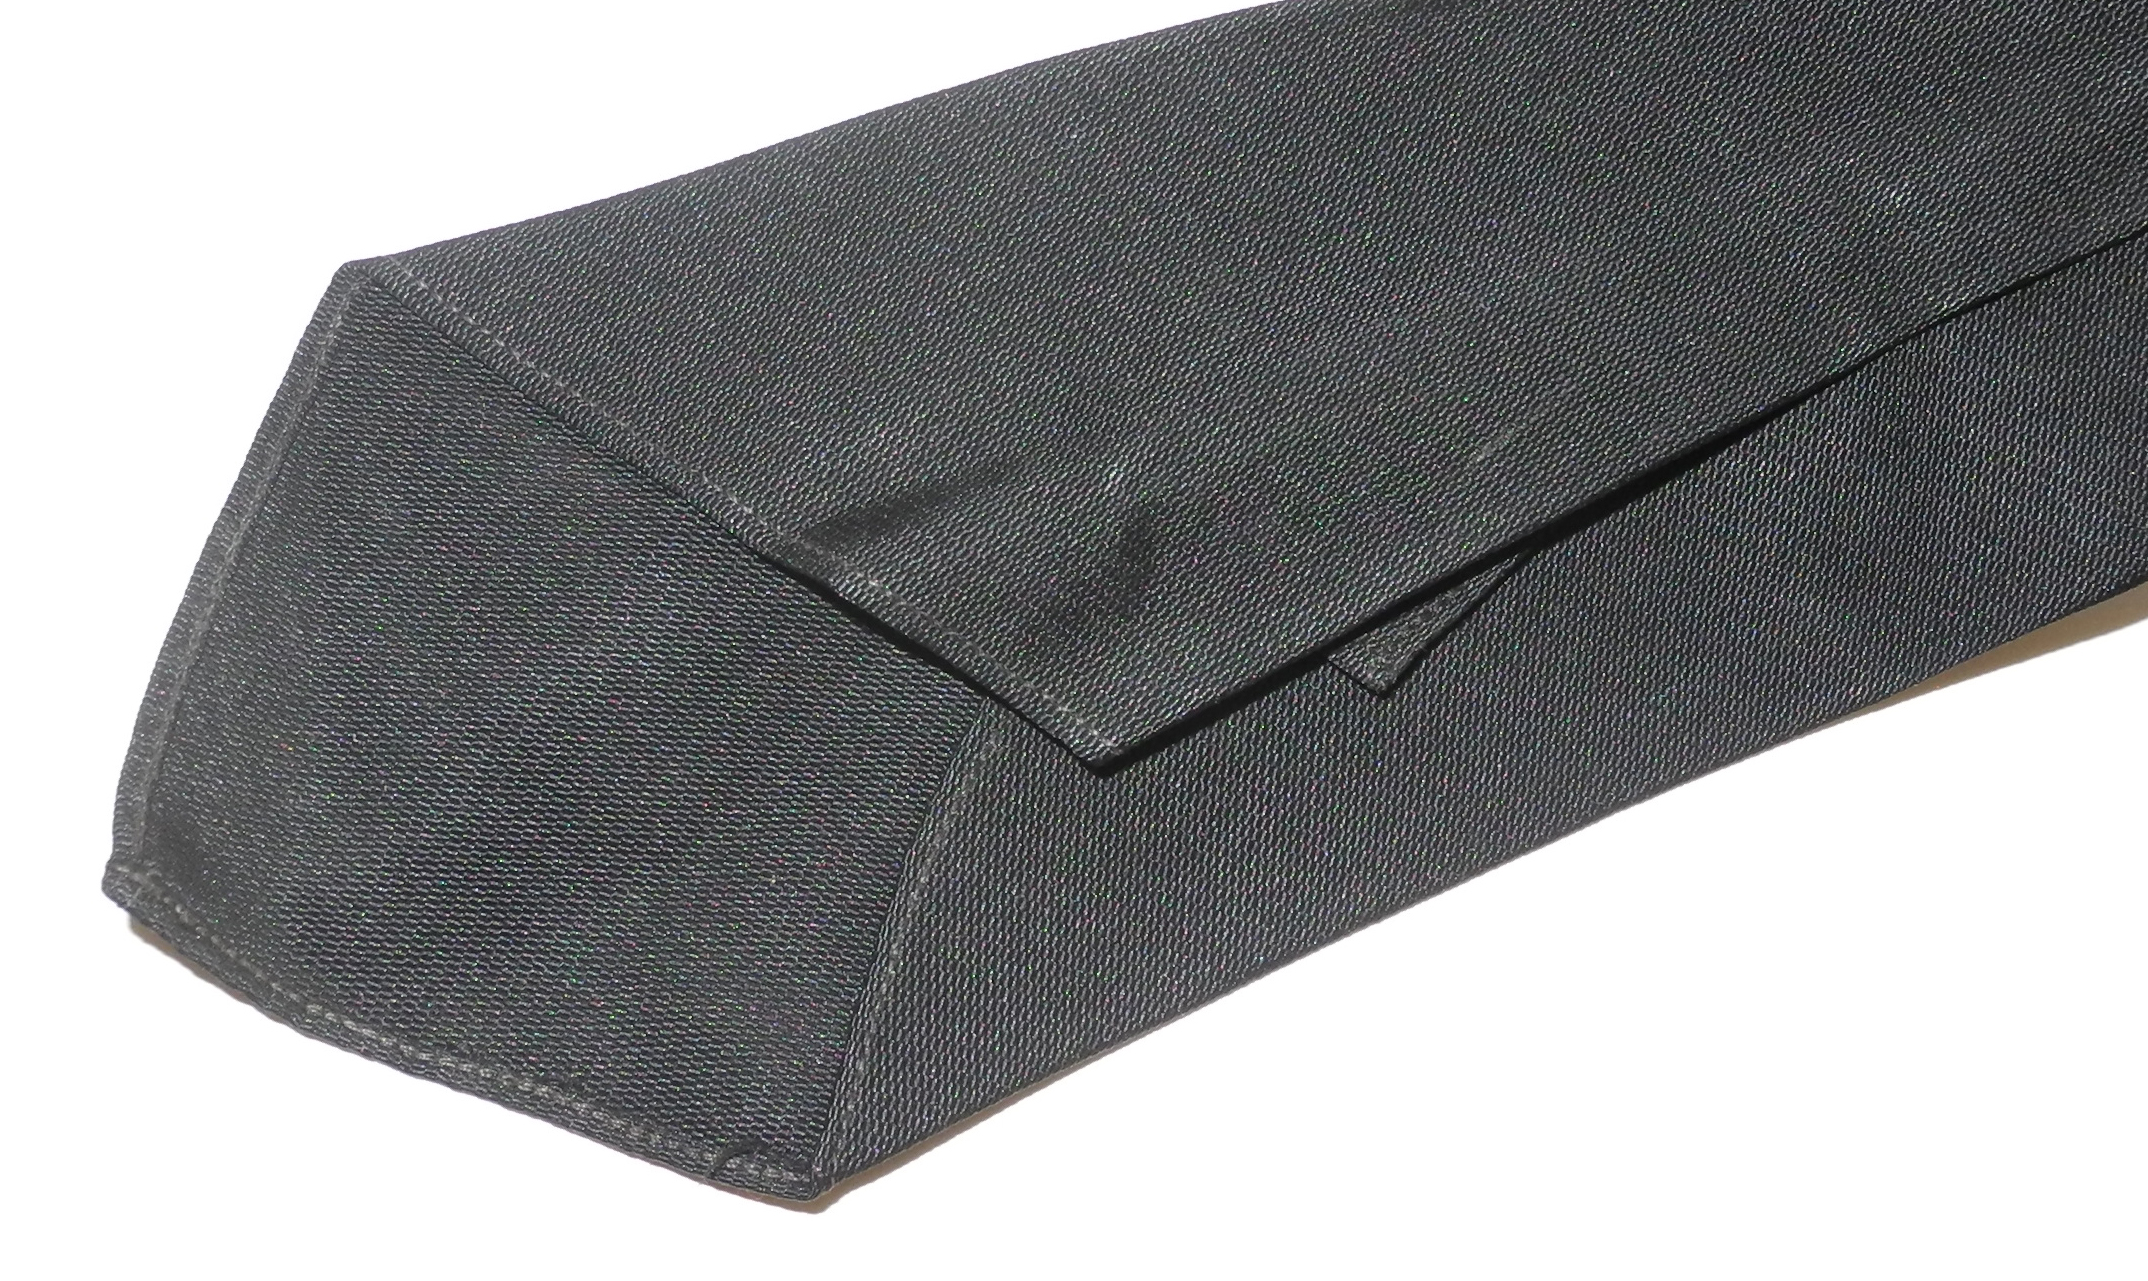 RAF officer's black silk / rayon tie